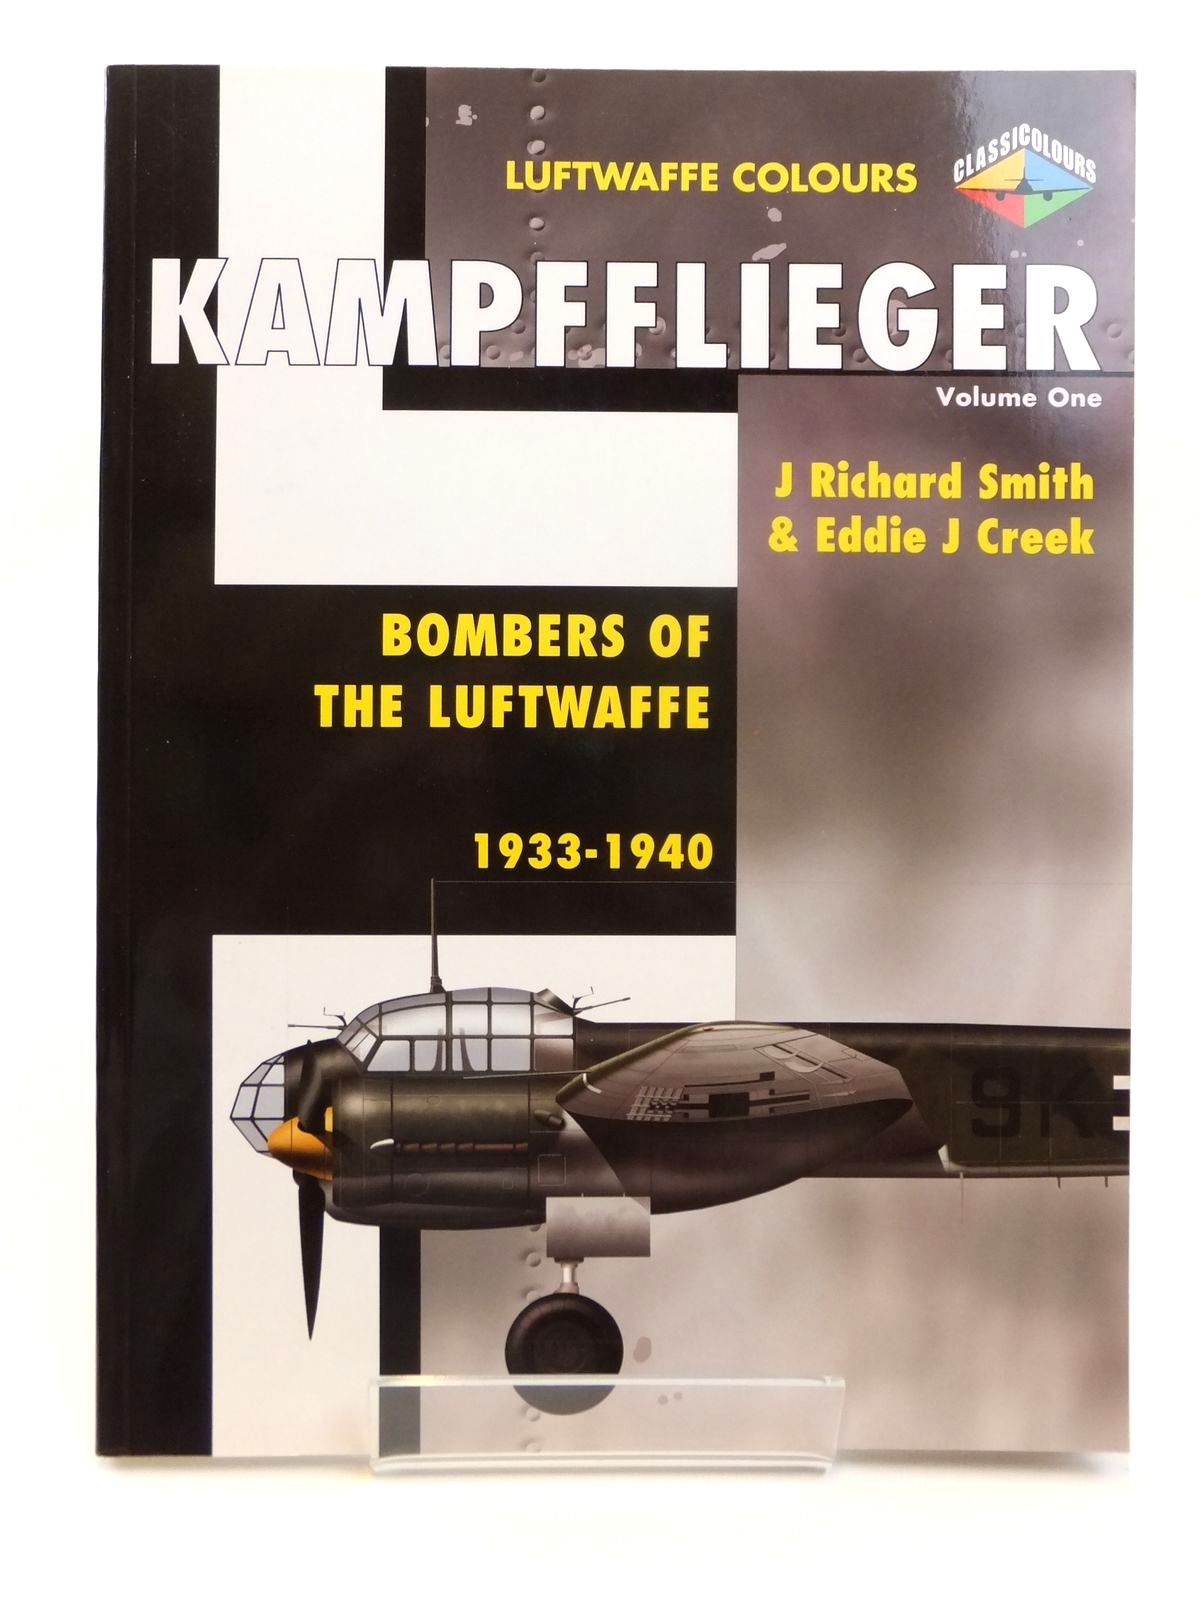 Photo of KAMPFFLIGER VOLUME ONE BOMBERS OF THE LUFTWAFFE 1933-1940 written by Smith, J. Richard Creek, E.J. published by Classic Publications (STOCK CODE: 1608244)  for sale by Stella & Rose's Books